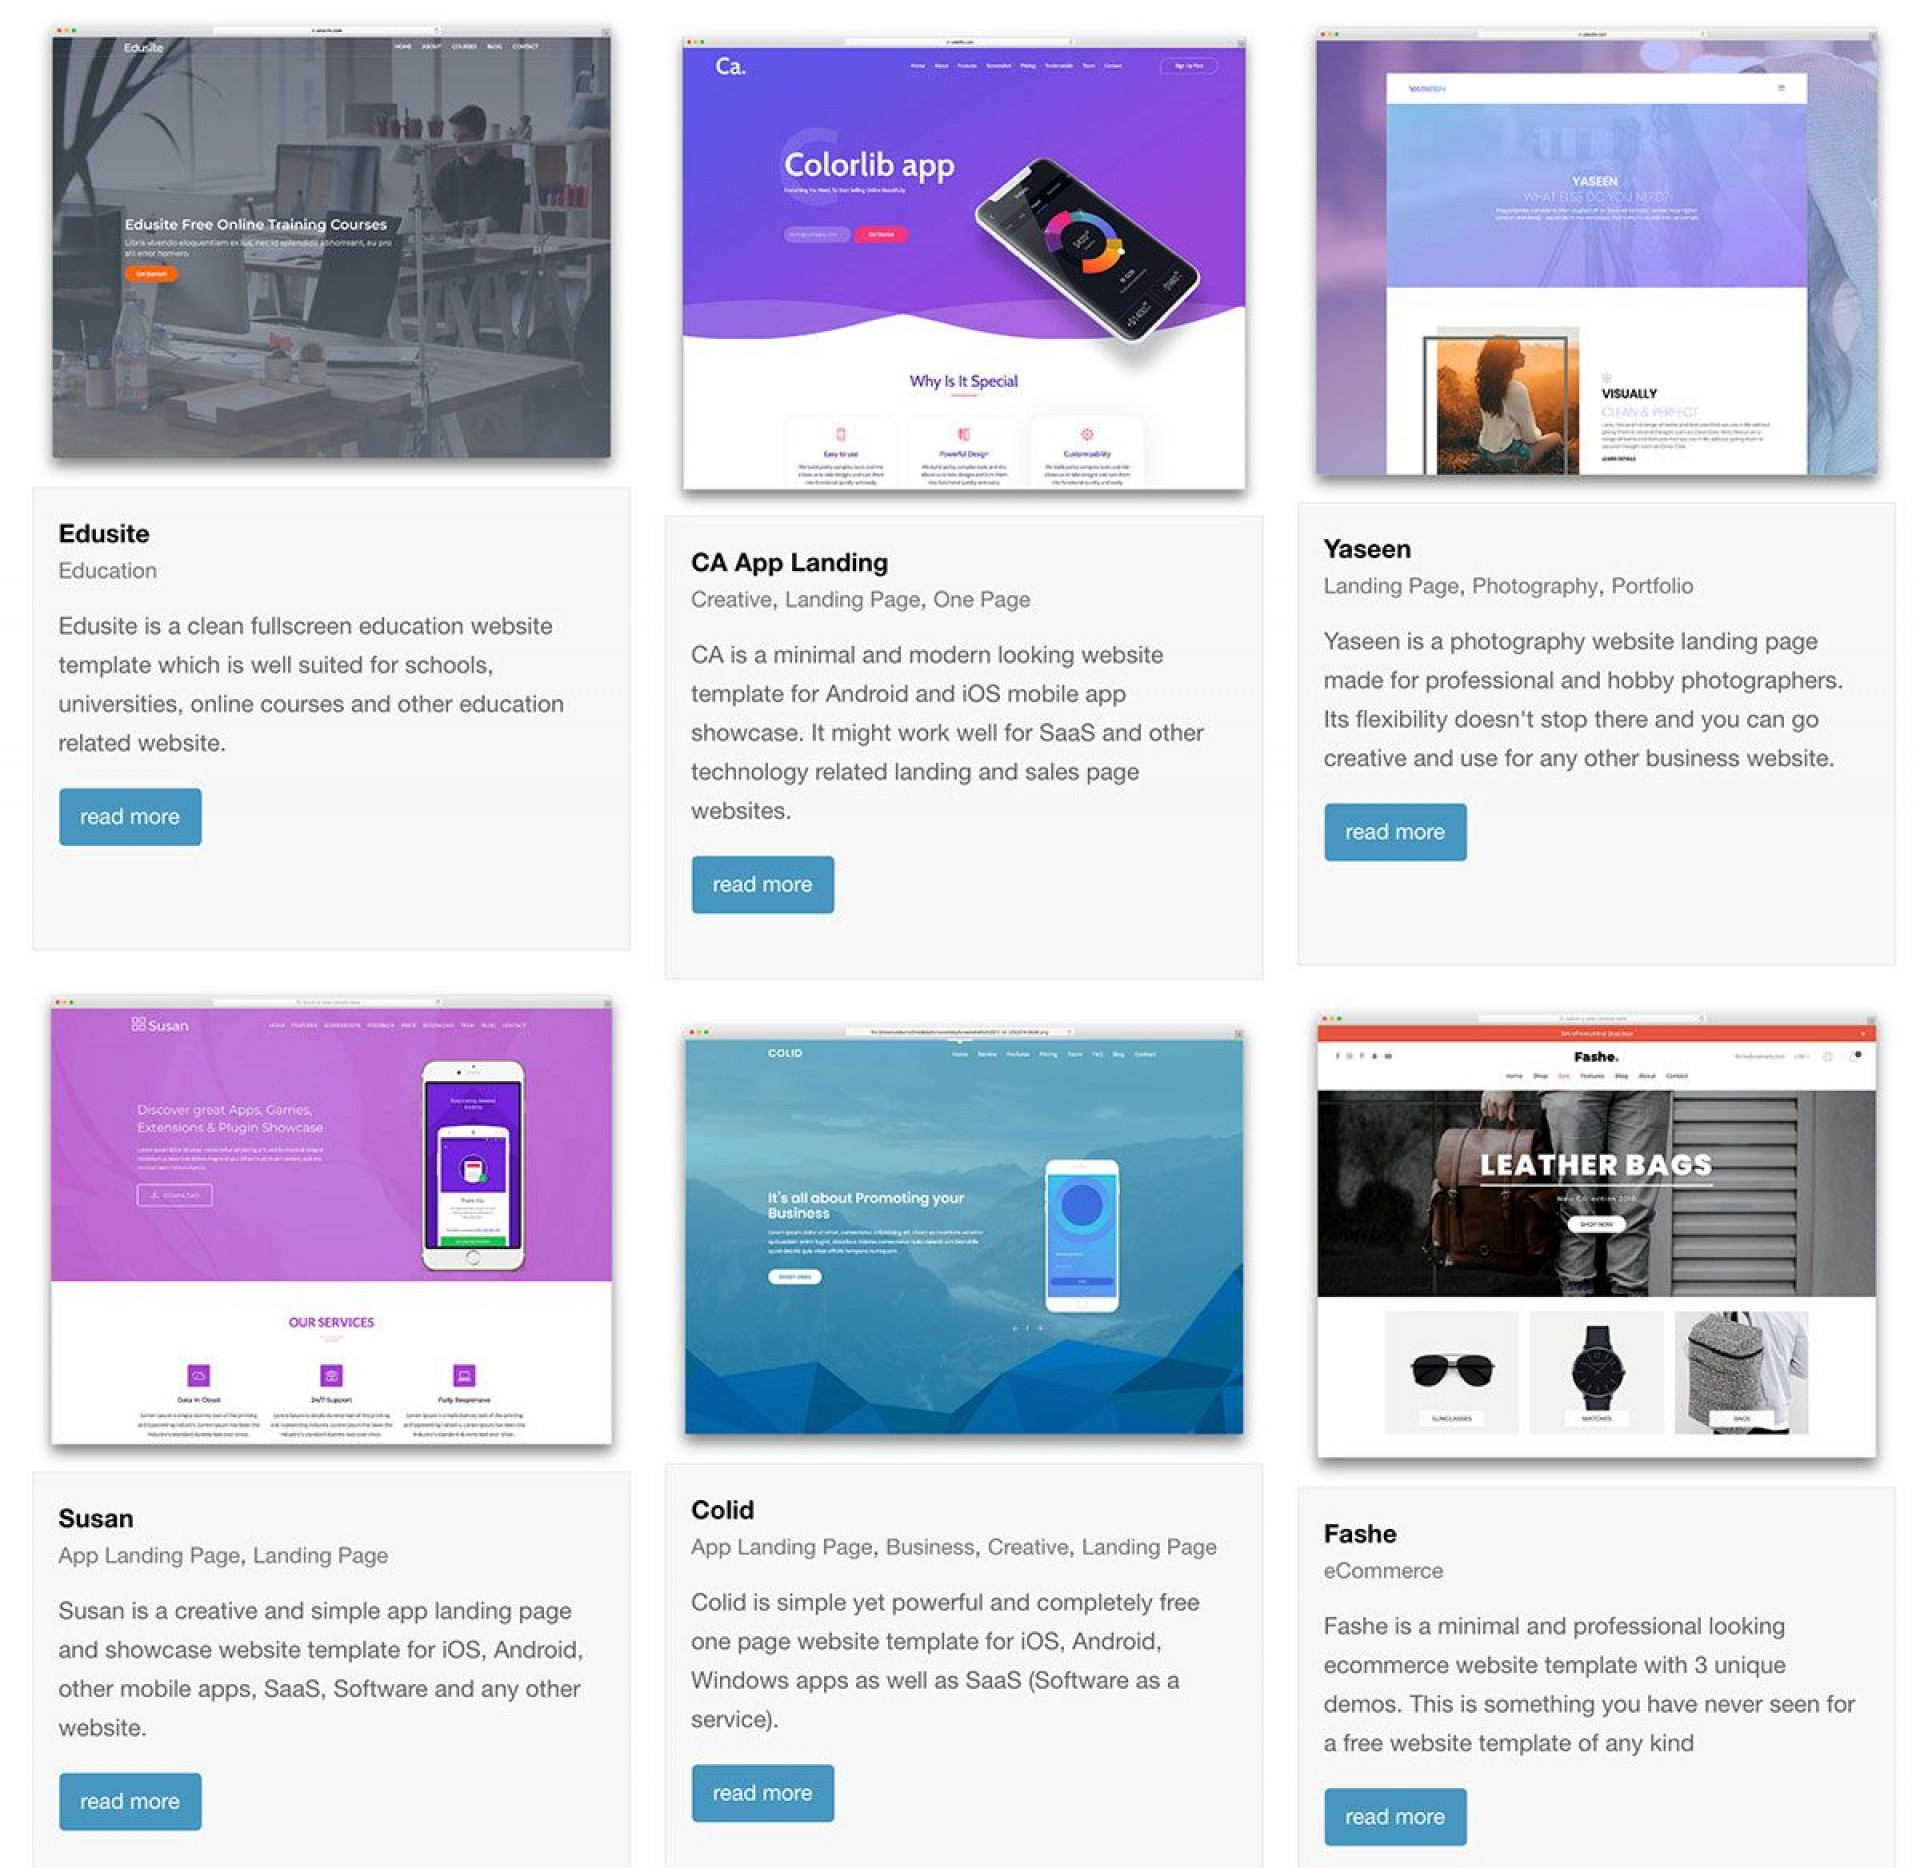 007 Staggering Free Bootstrap Website Template Inspiration  Templates Responsive With Slider Download For Education Busines1920